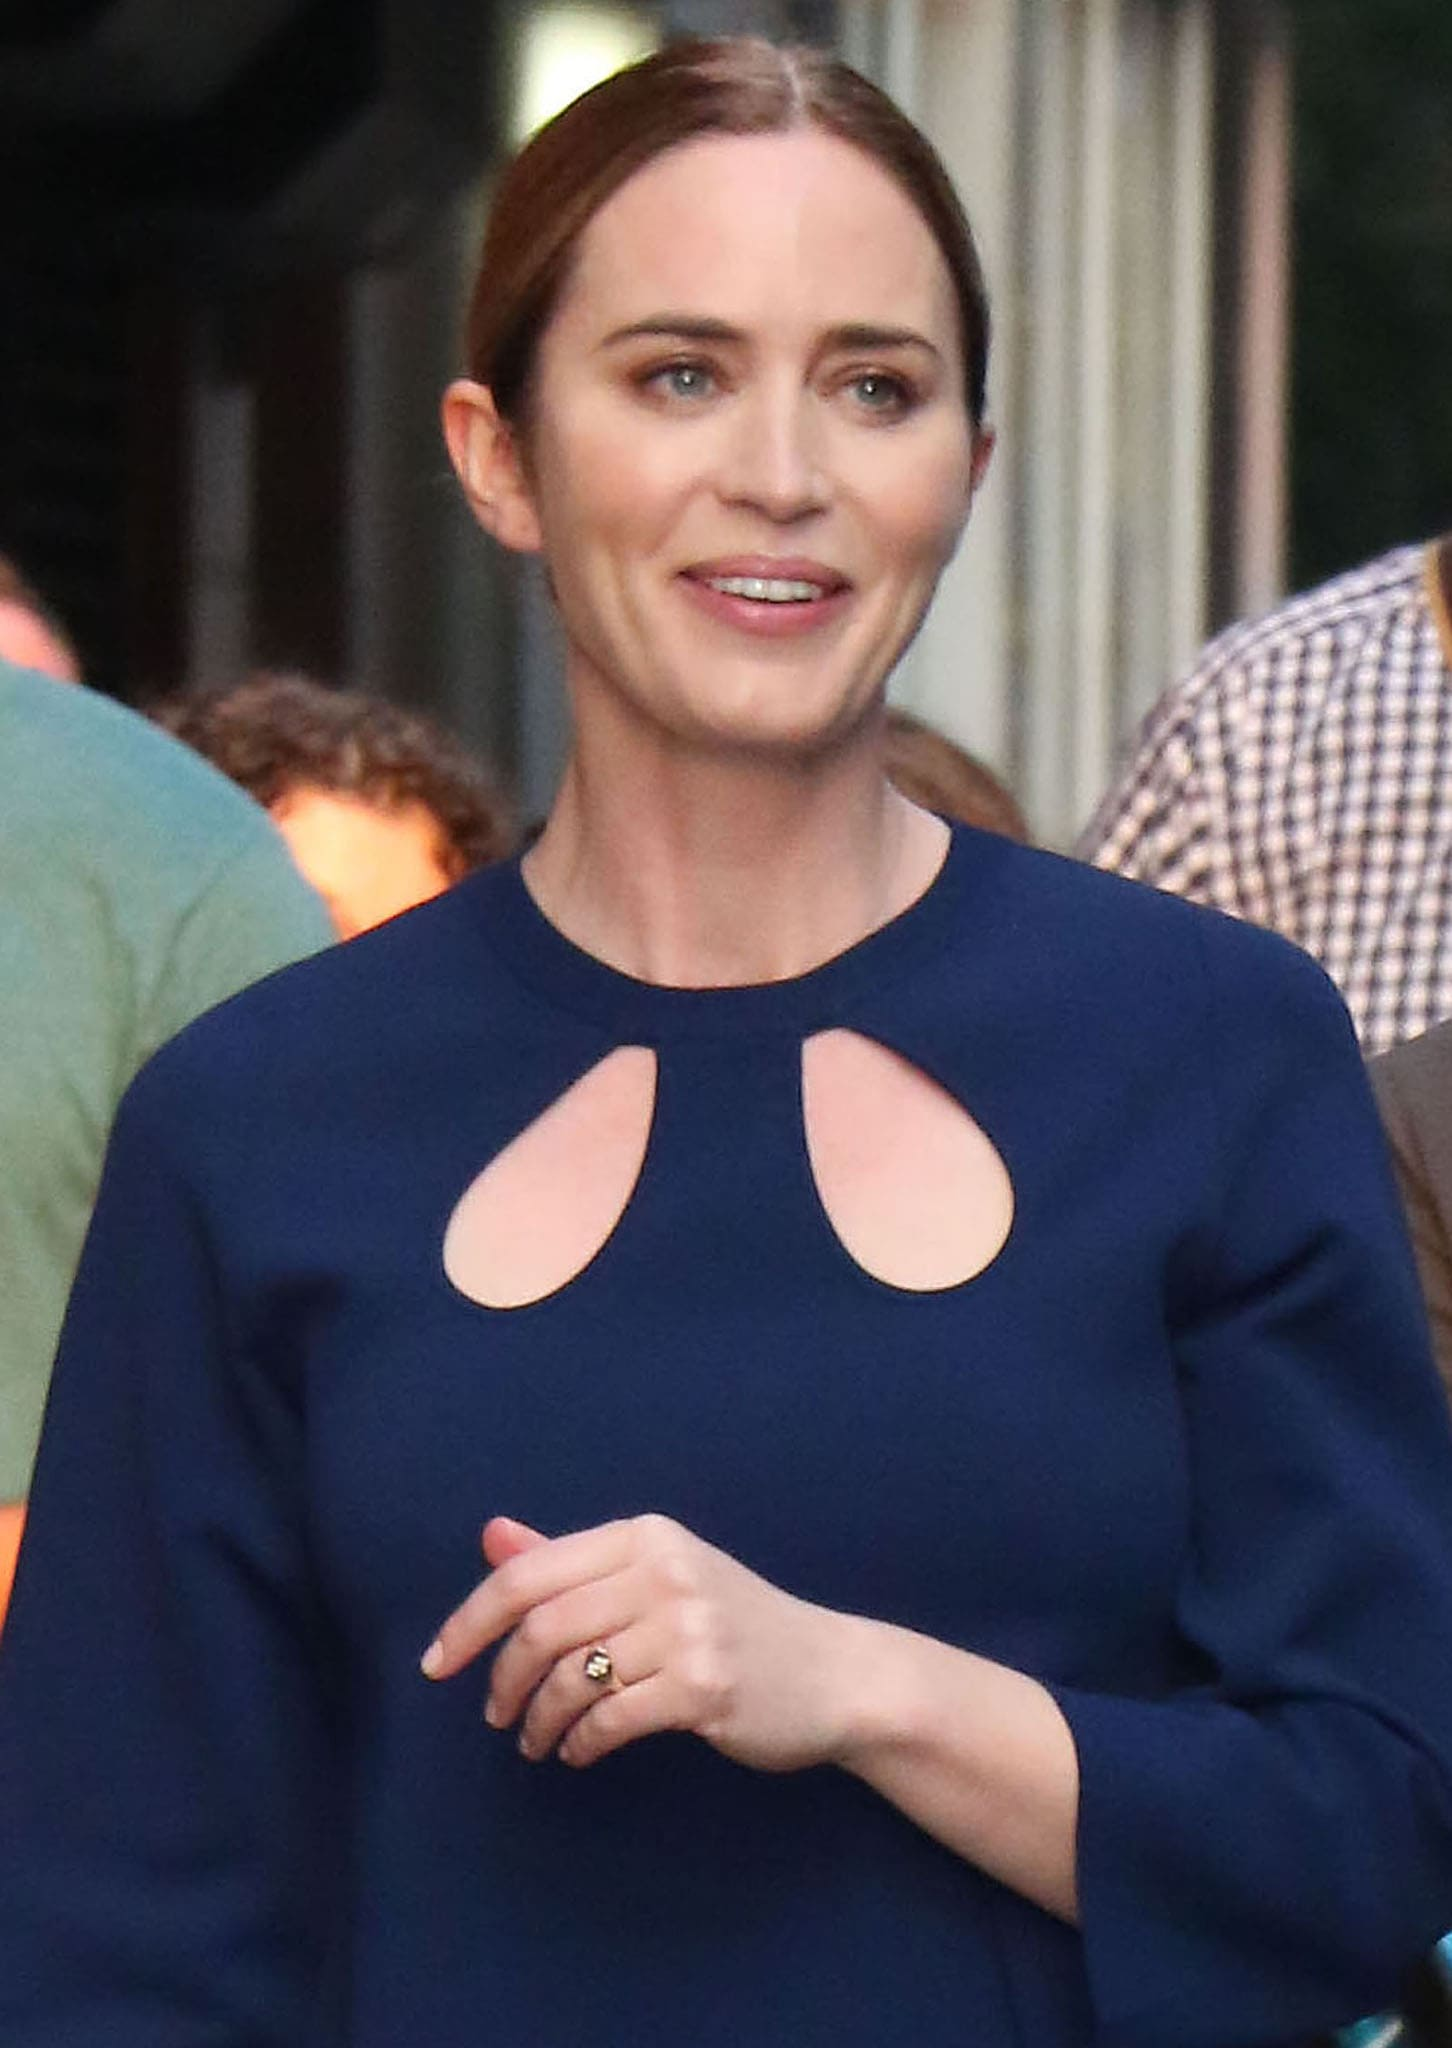 Emily Blunt keeps things simple with a neat hair bun and peachy makeup